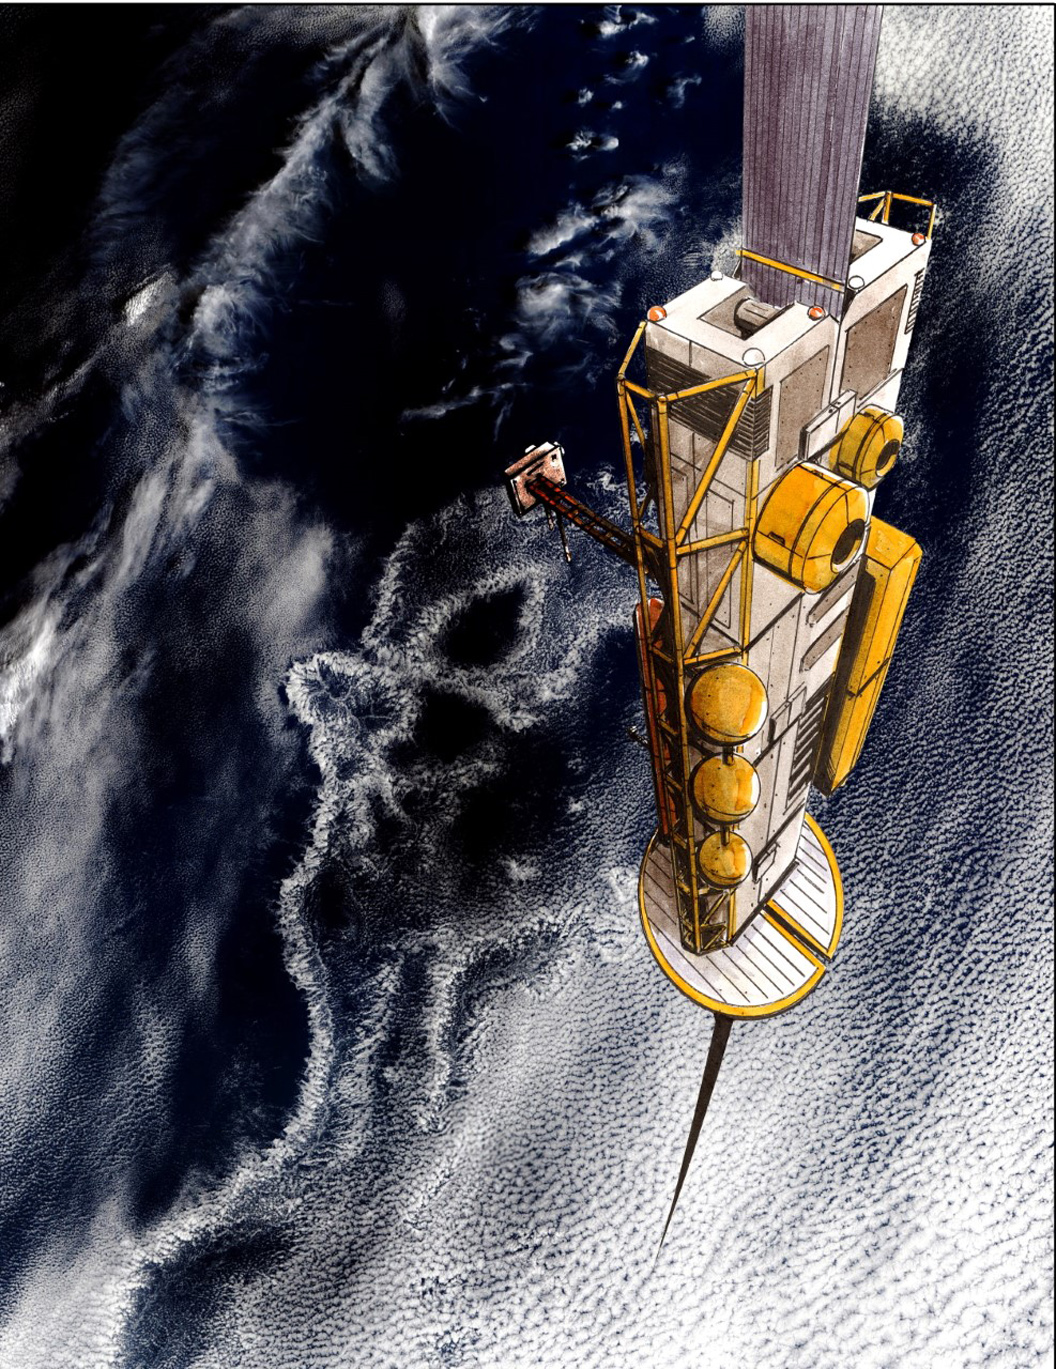 Space 'elevator' to the Moon could happen by the end of the century